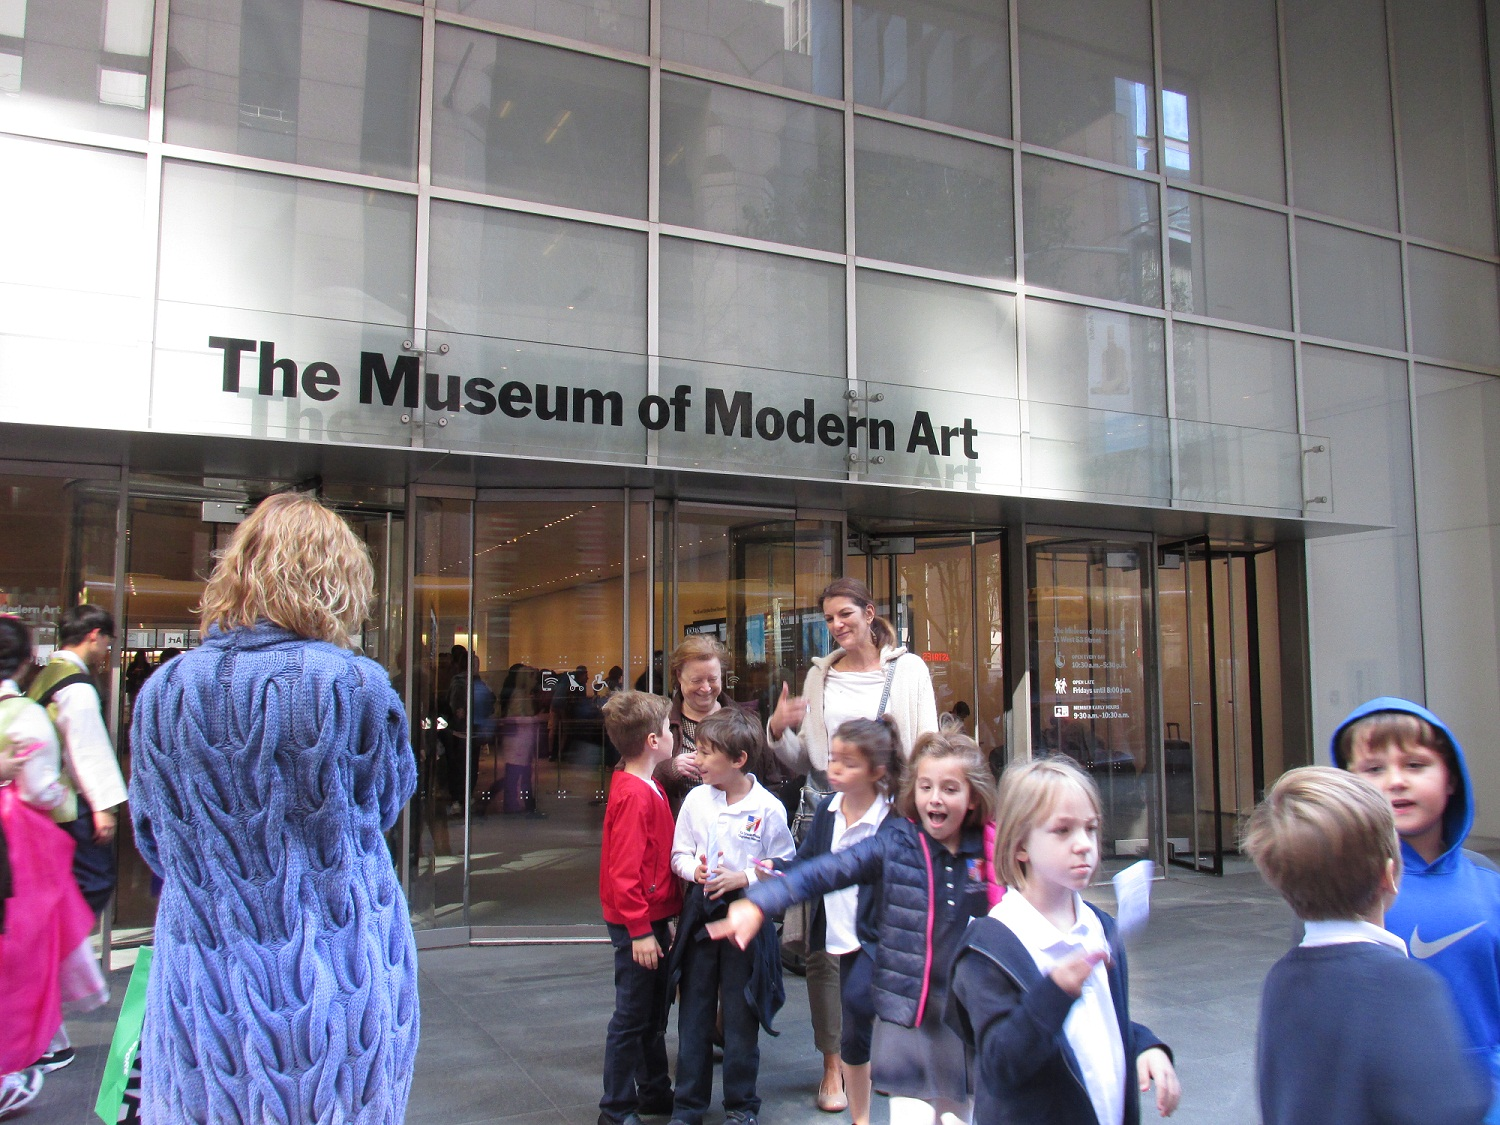 The museum is a must-visit in New York.